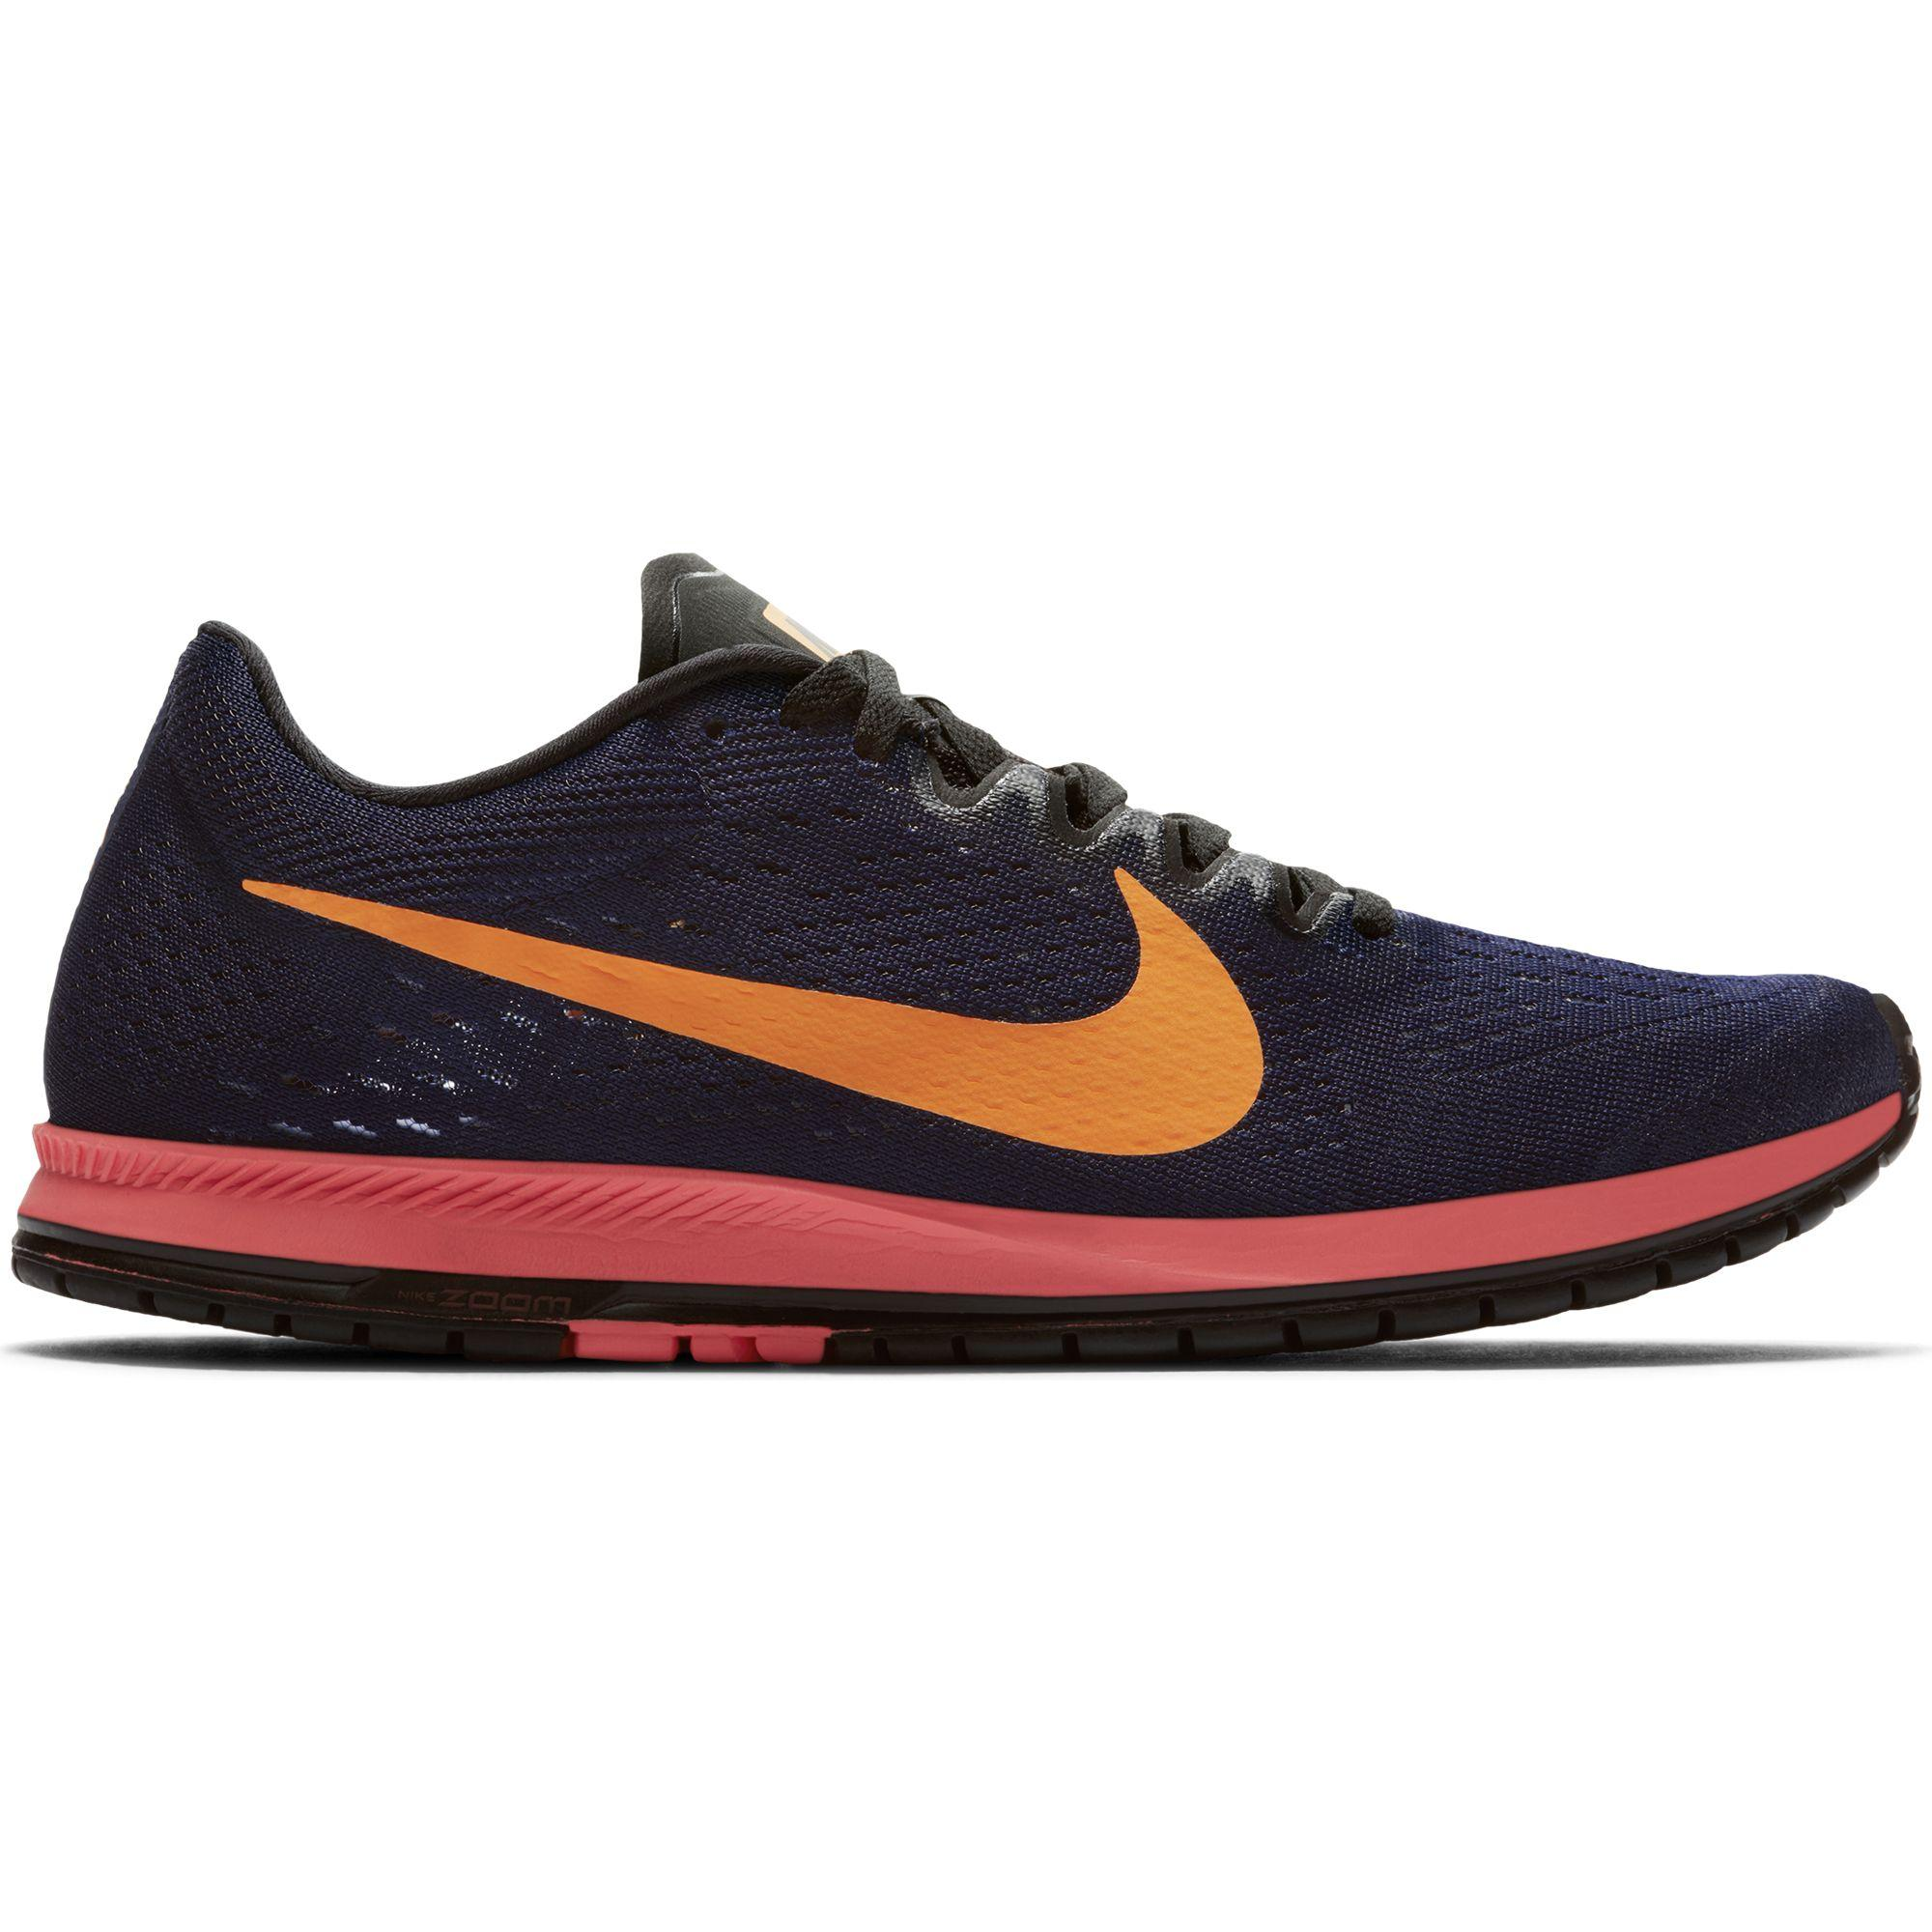 96c60f15f6713 Nike Shoes Air Zoom Streak 6 Blackened Blue orange Peel-black ...